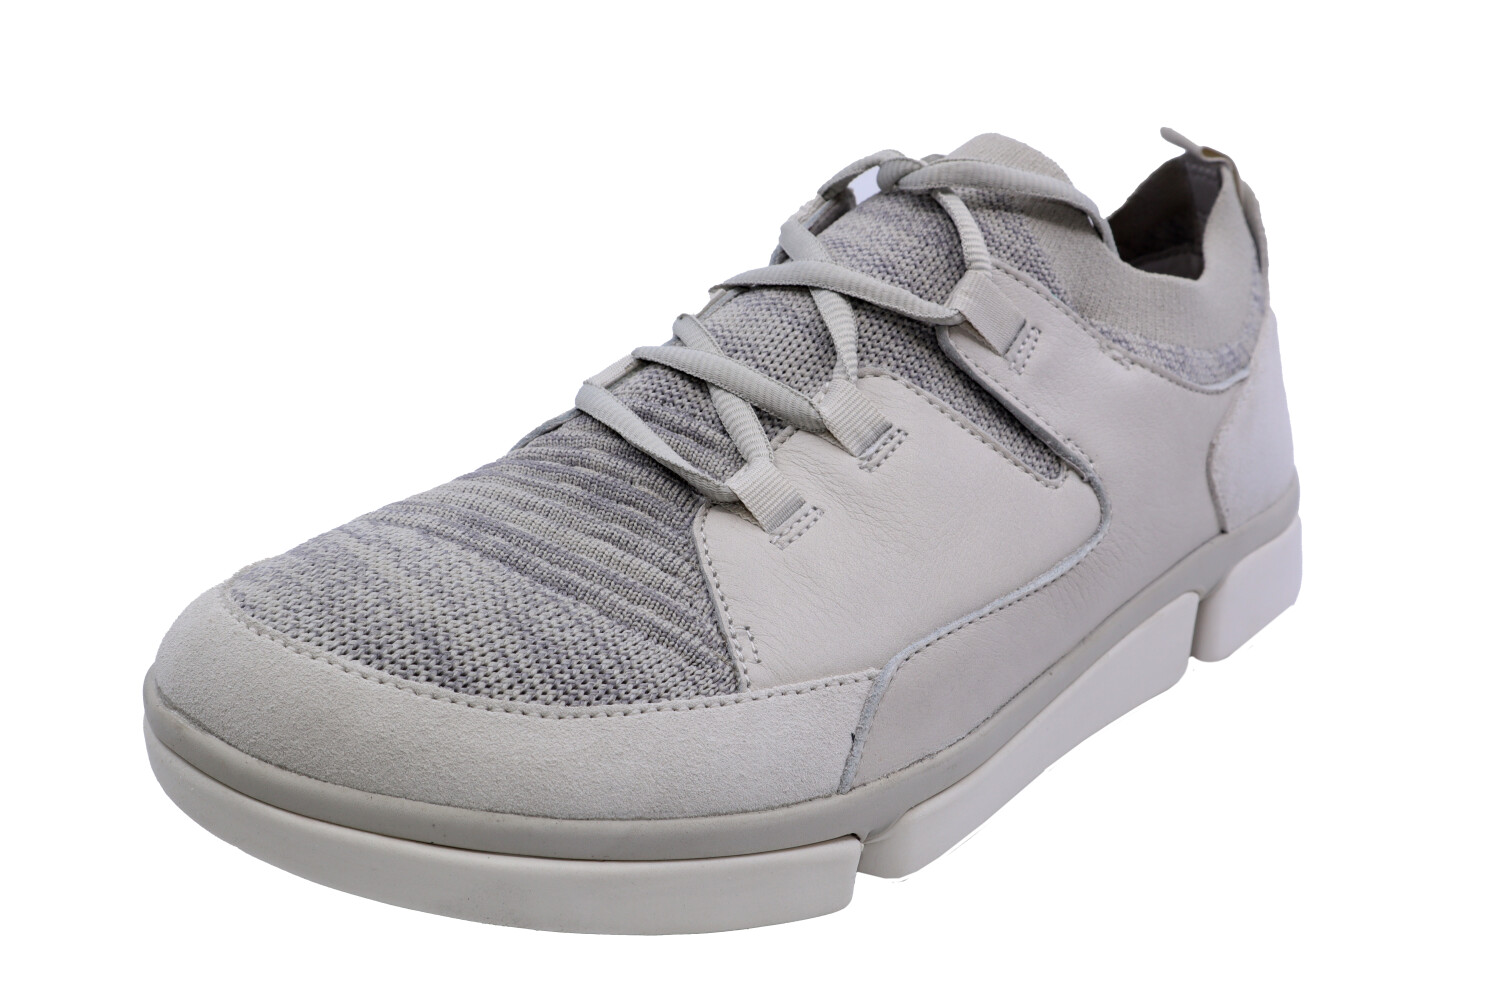 Clarks Men's Tri Verve Free White Combi Ankle-High Leather Sneaker - 11M